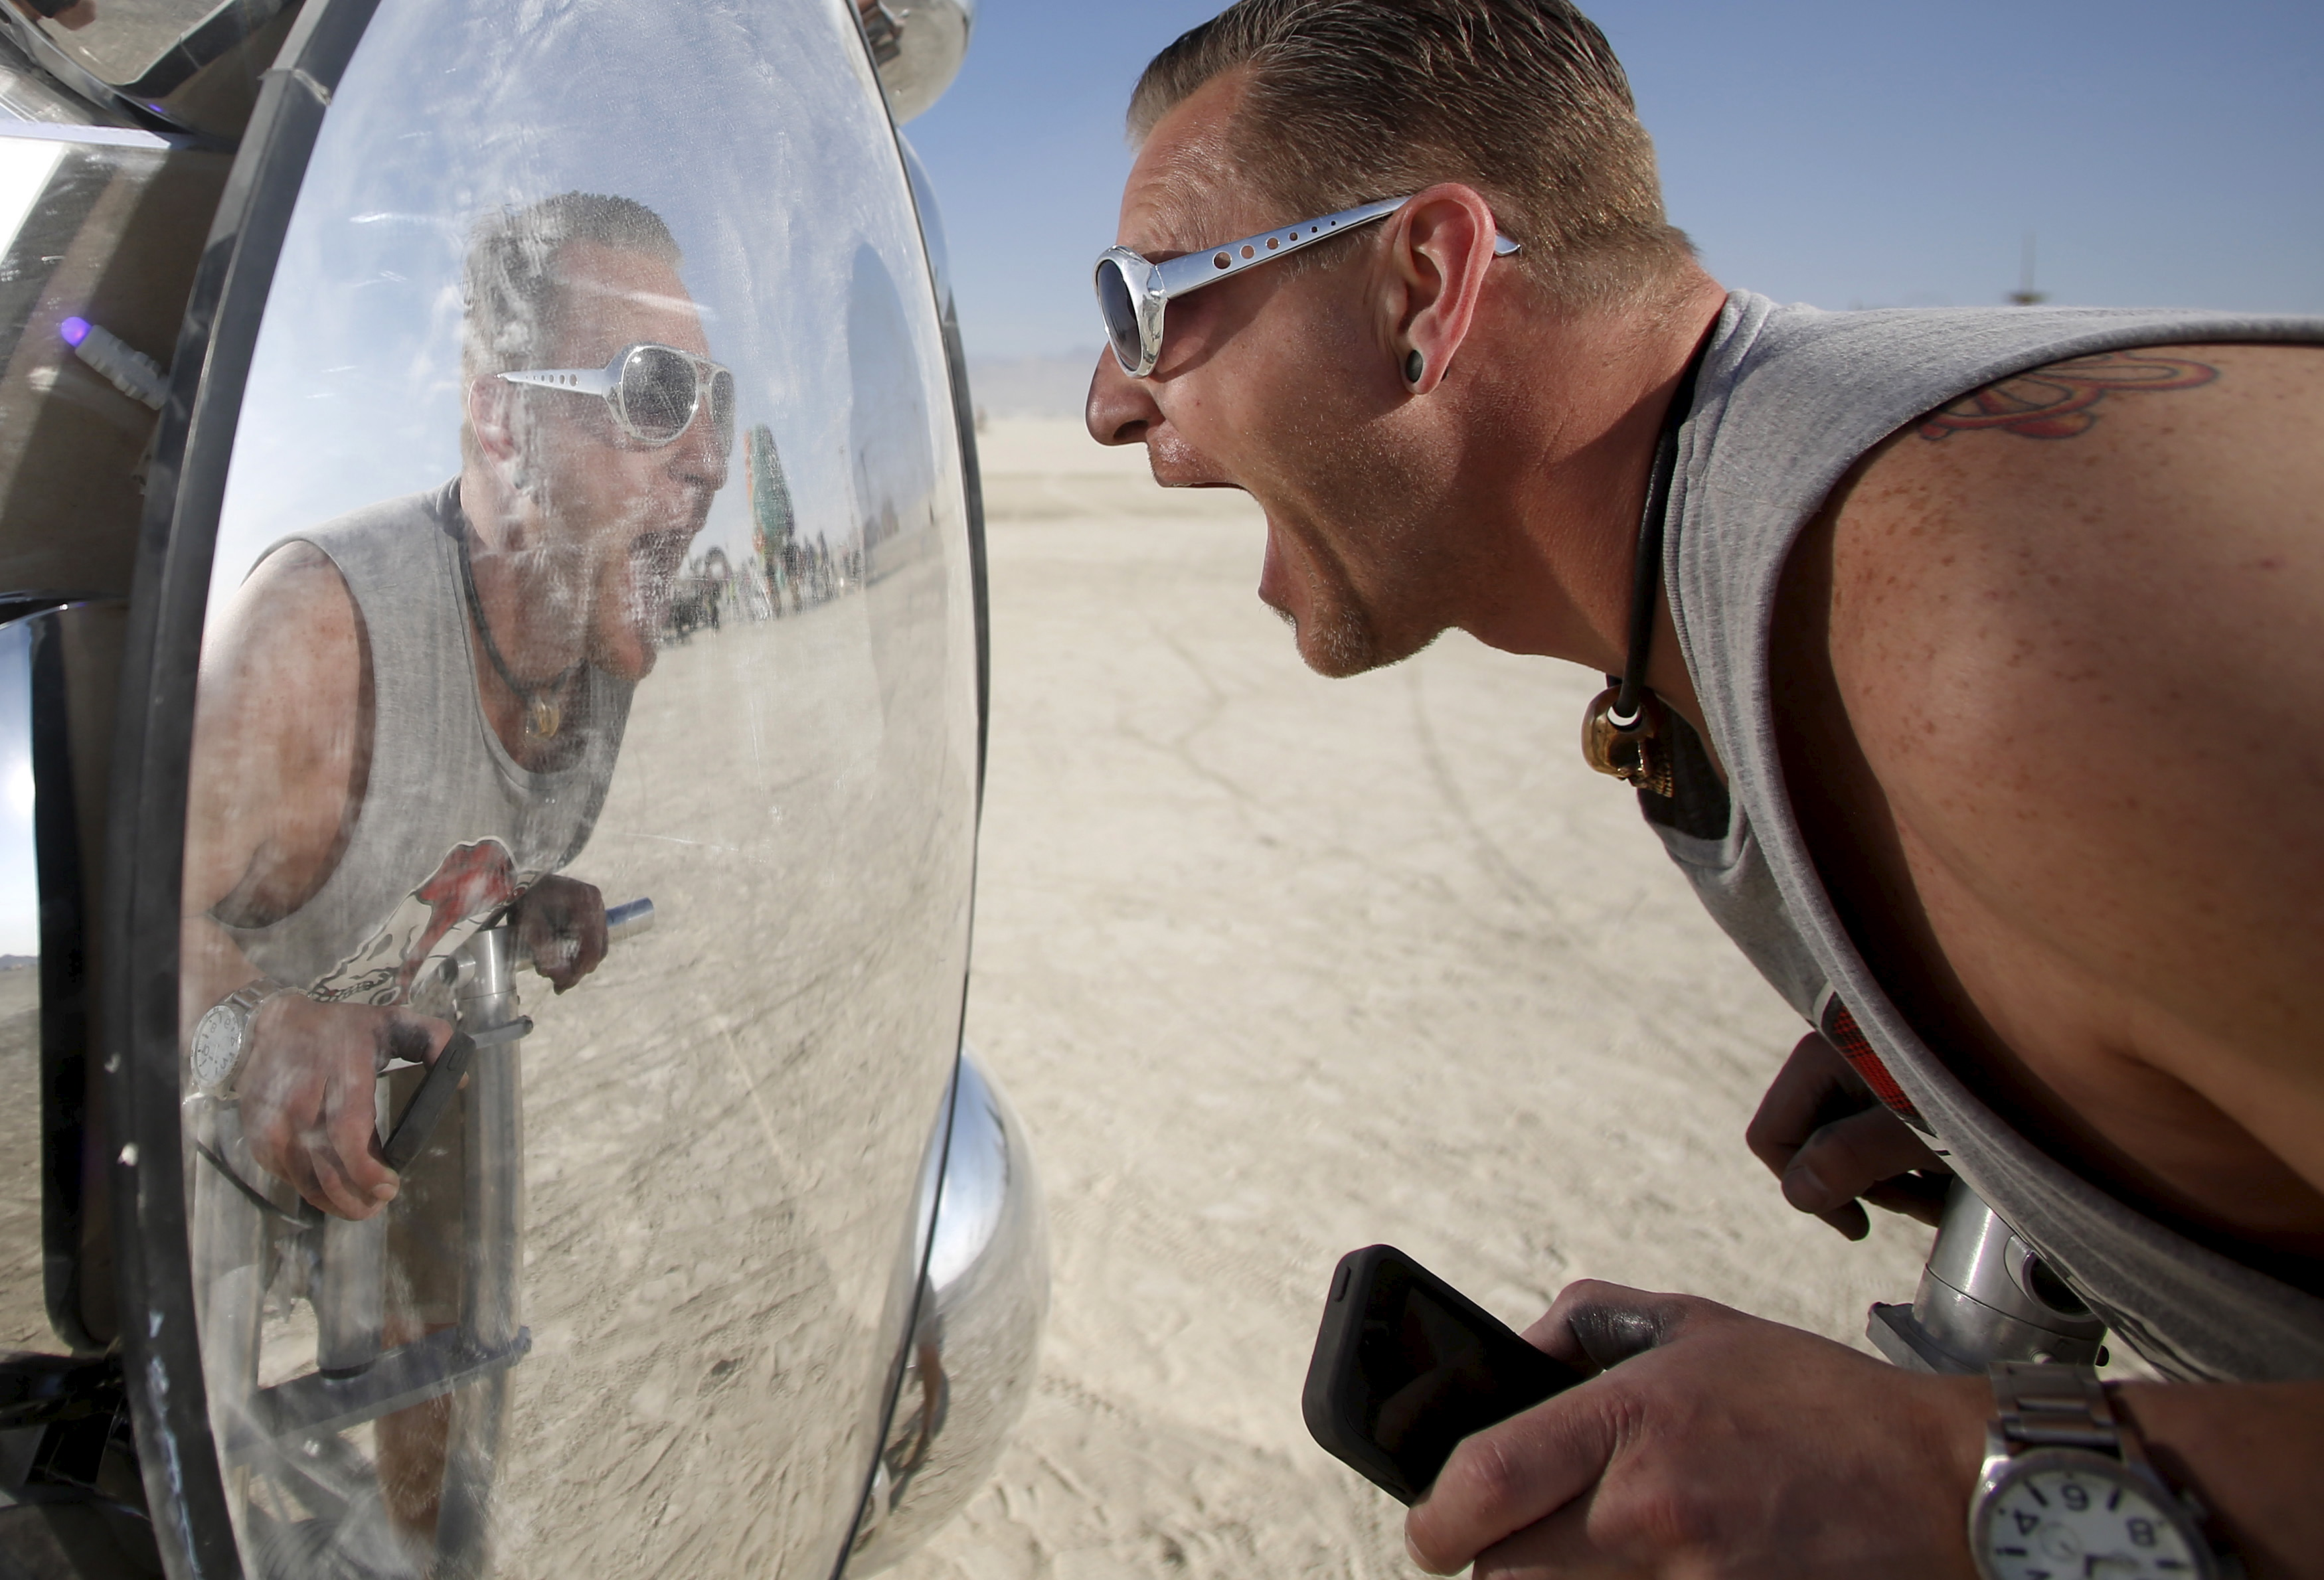 Wilf Griese interacts with the art installation Compound Eye during the desert fest on Sept. 1. Photo by Jim Urquhart/Reuters